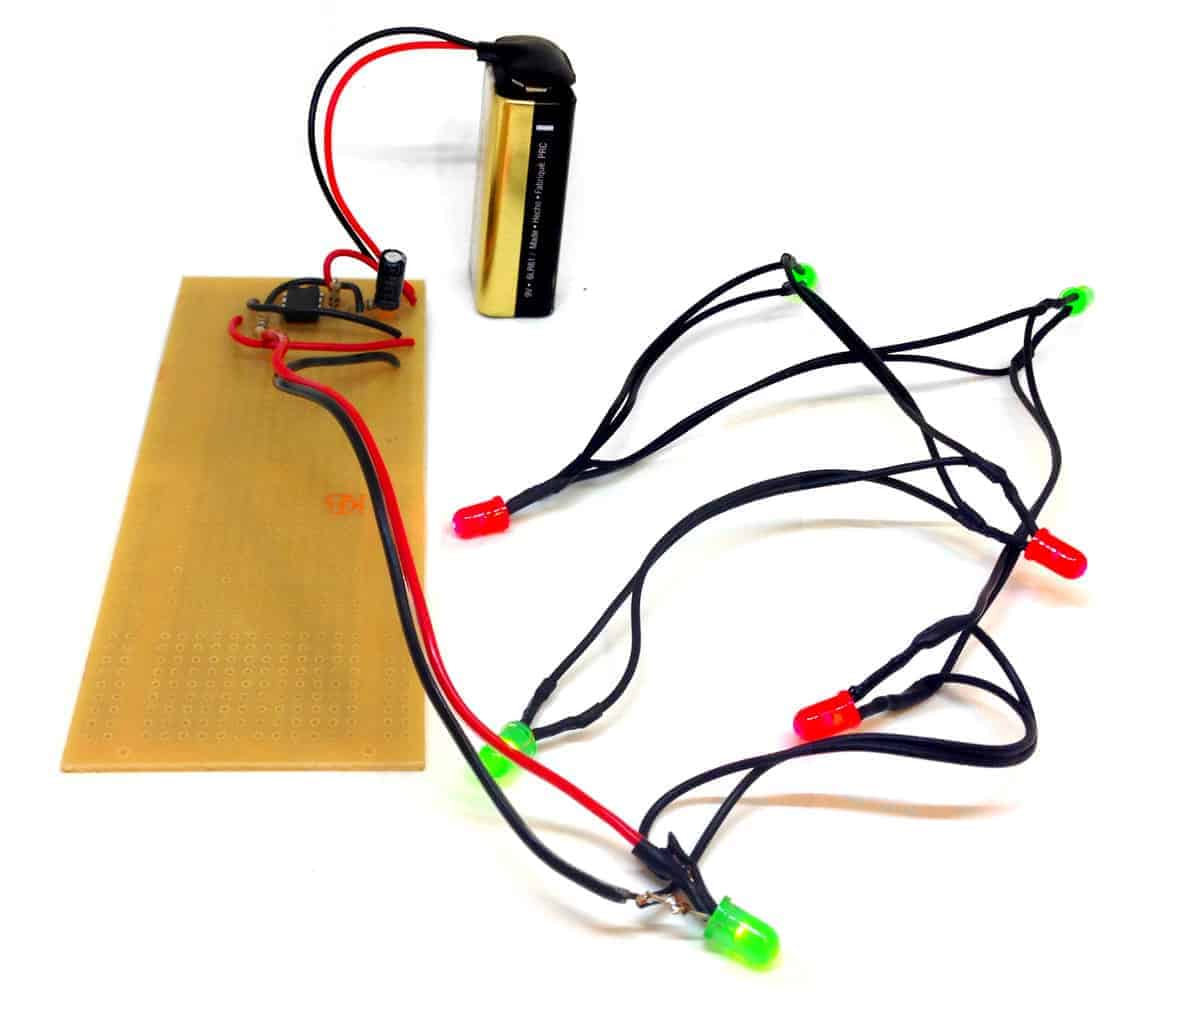 Blinking Christmas Lights Build Electronic Circuits Electronix The Alternating Led Flasher Circuit With A 555 Ic